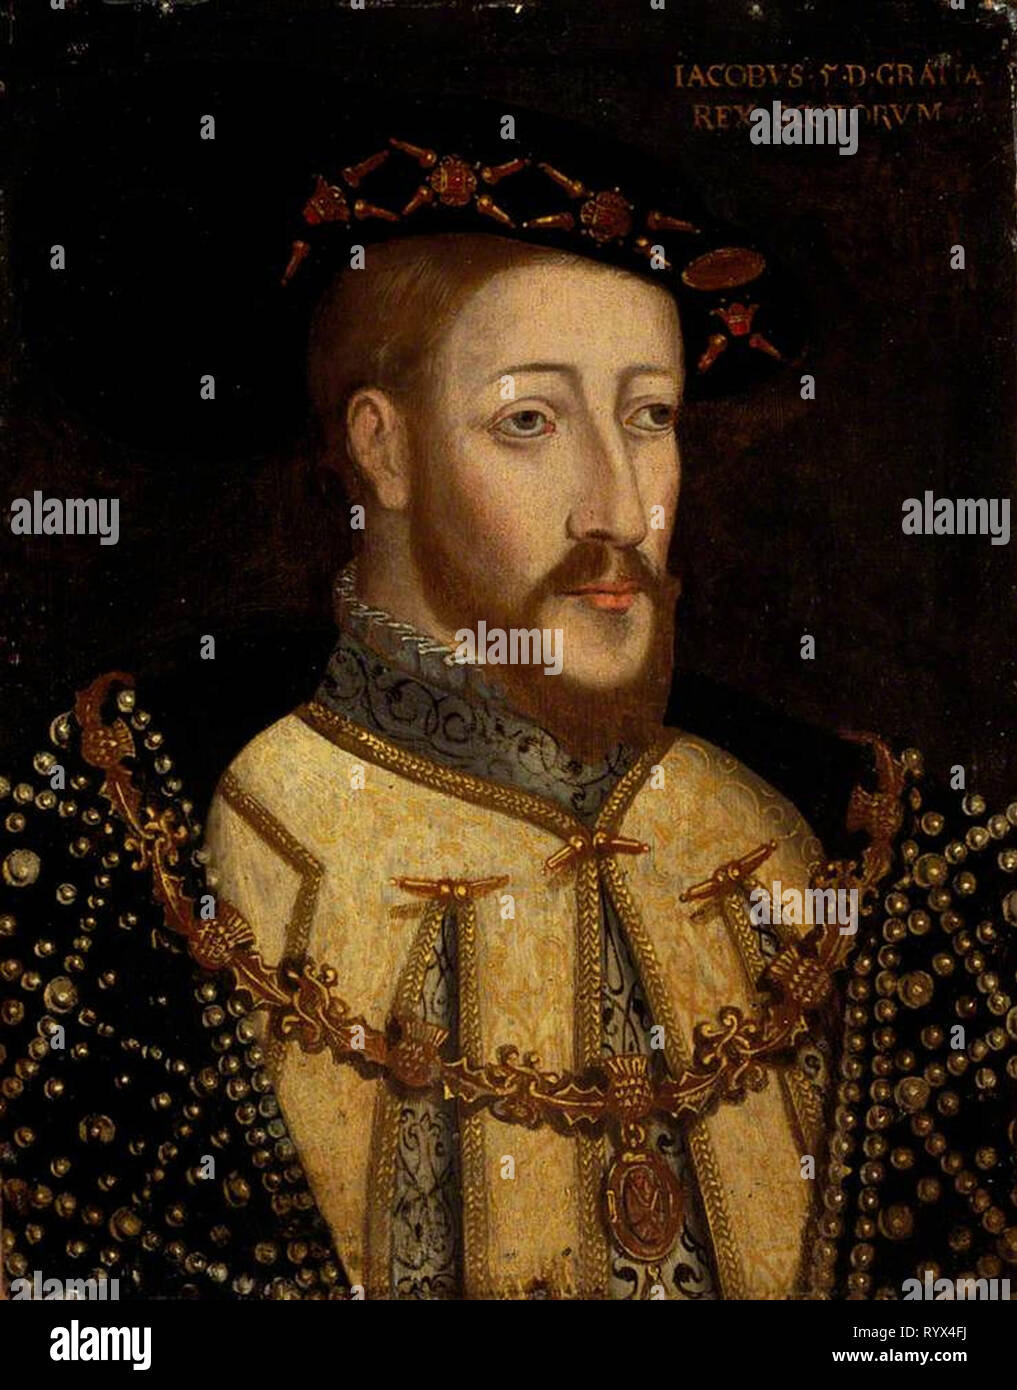 Henry VIII was King of England from 1509 until his death in 1547. Henry was the second Tudor monarch, succeeding his father, Henry VII. Henry is best known for his six marriages - Stock Image